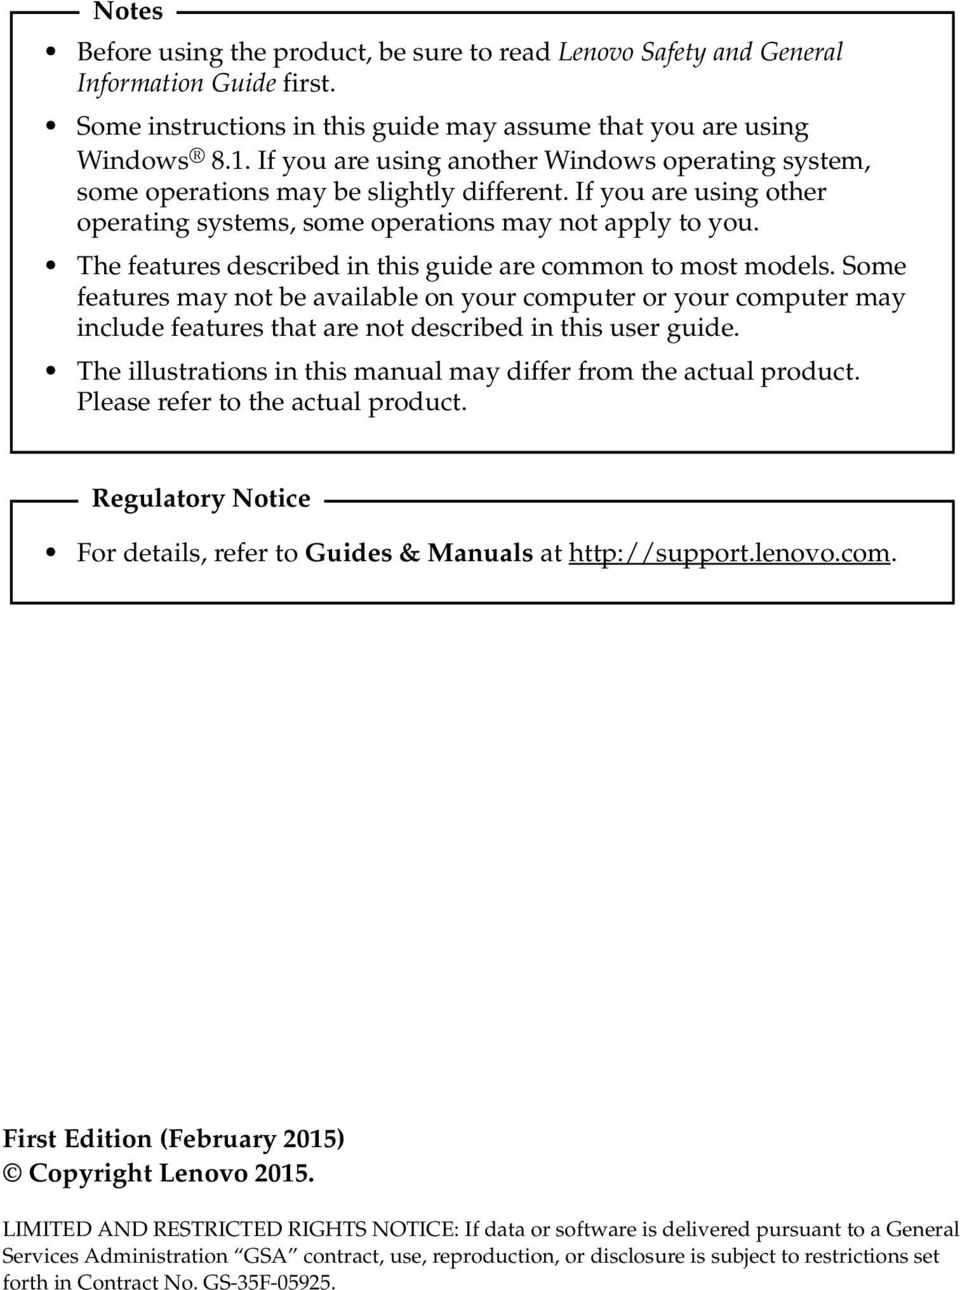 The features described in this guide are common to most models. Some features may not be available on your computer or your computer may include features that are not described in this user guide.